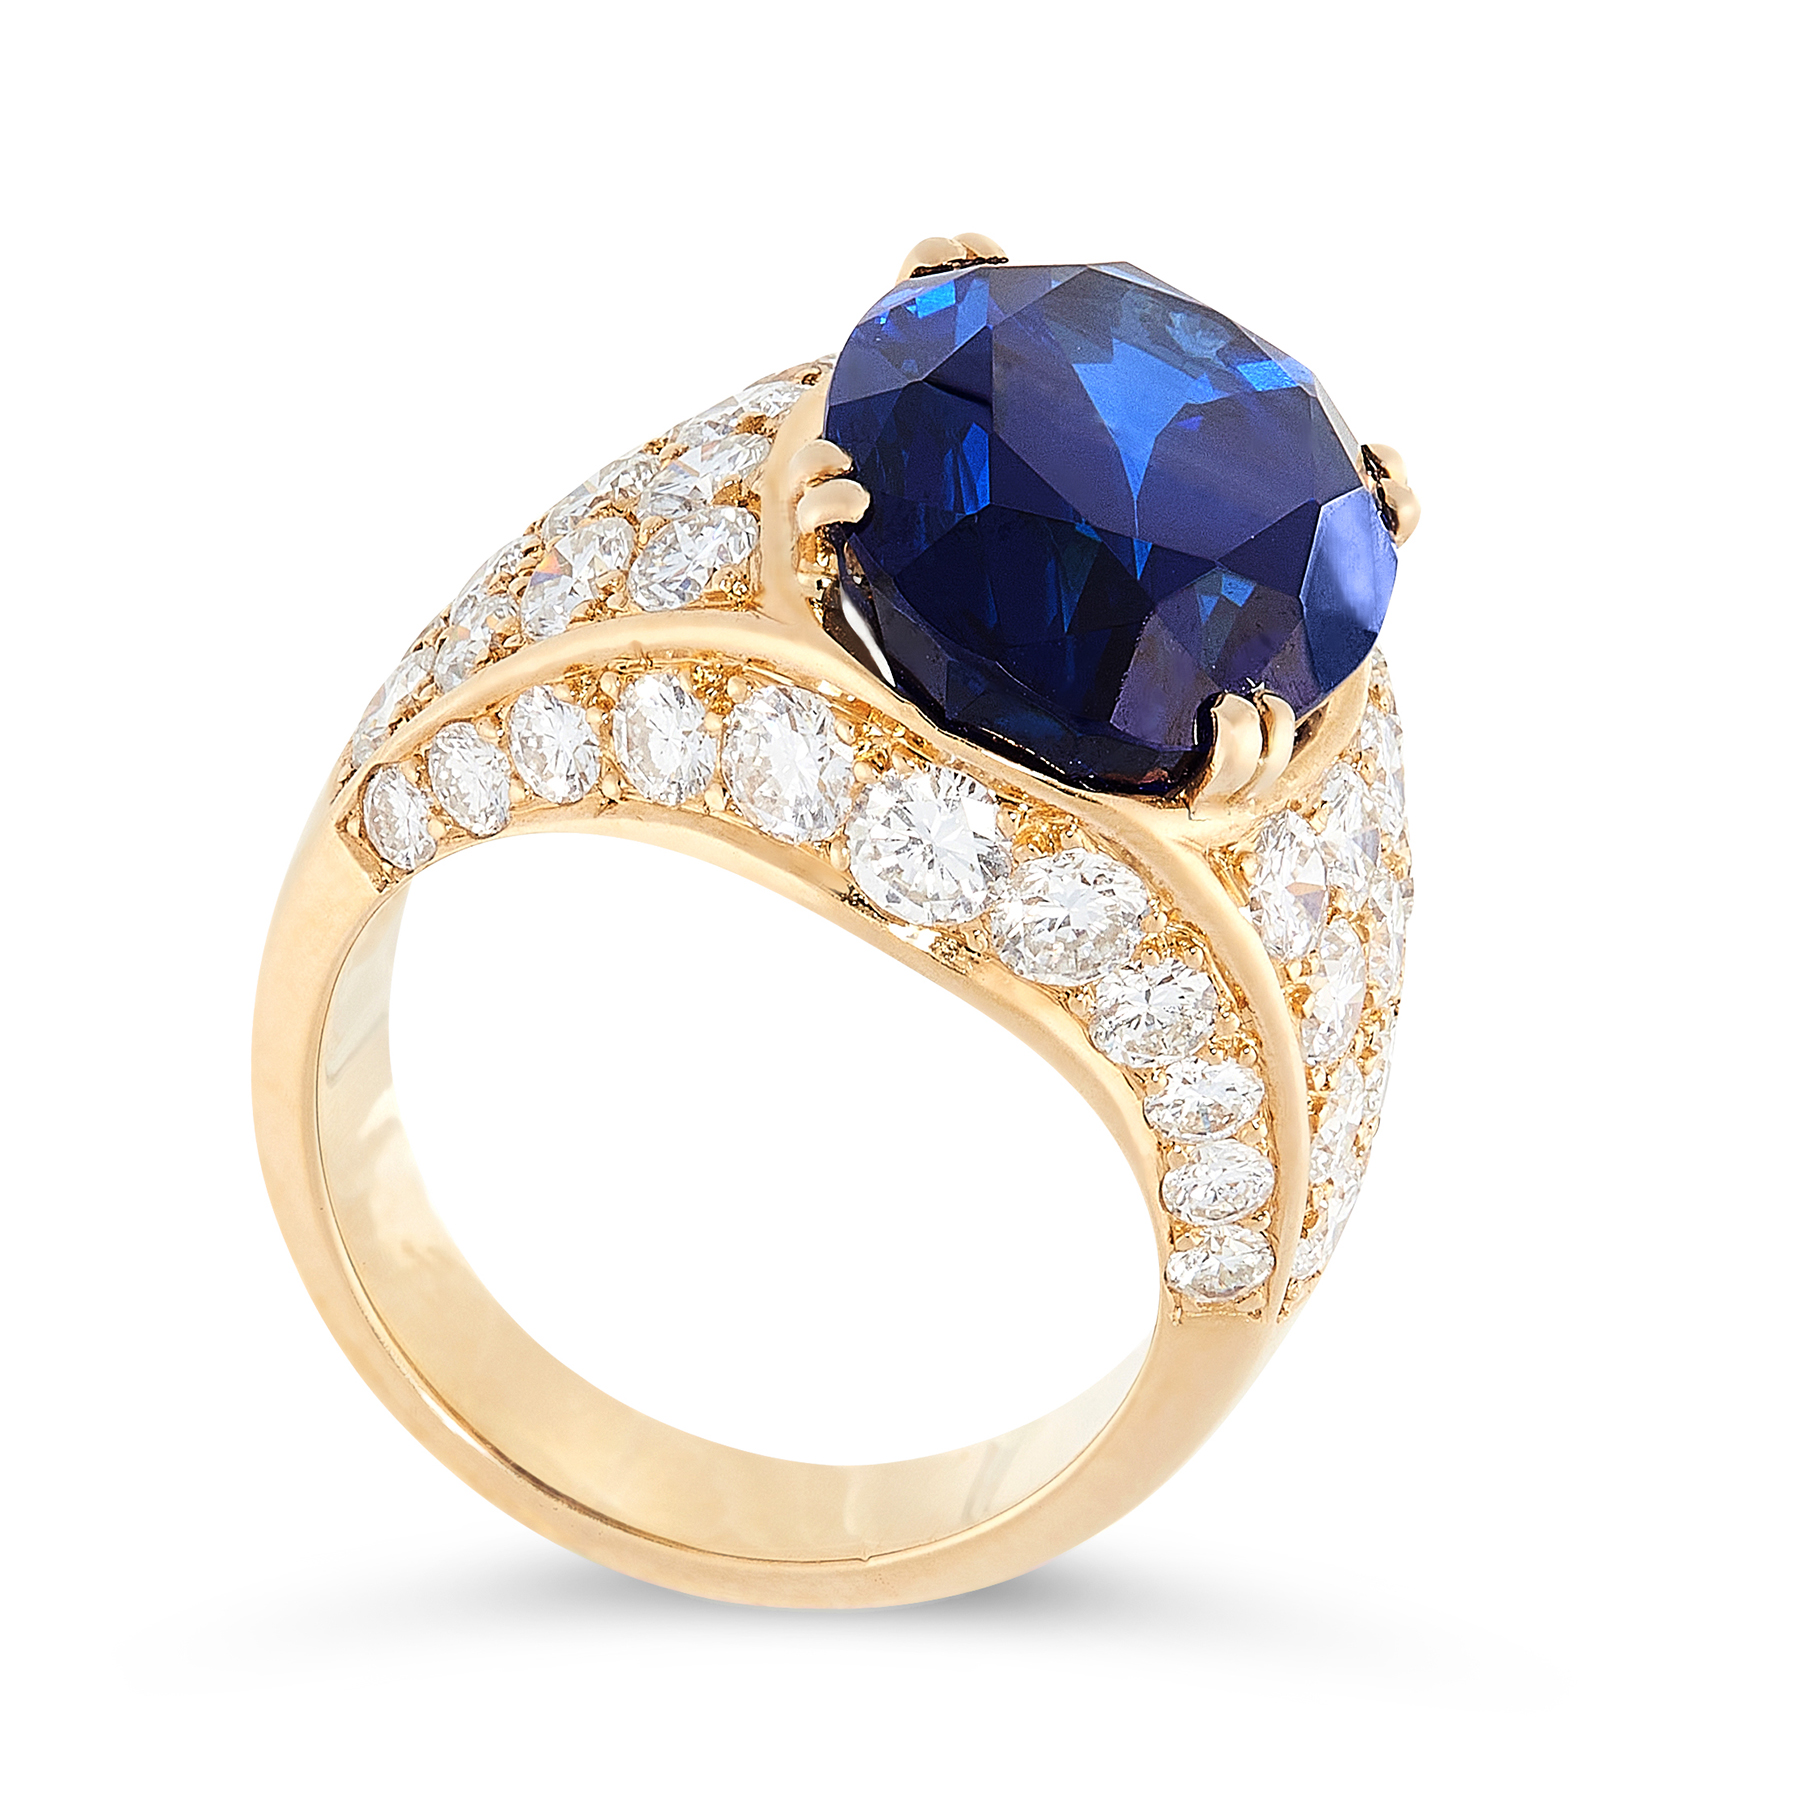 A 13.38 CARAT BURMA NO HEAT SAPPHIRE AND DIAMOND RING, VAN CLEEF & ARPELS set with an oval cut - Image 2 of 2